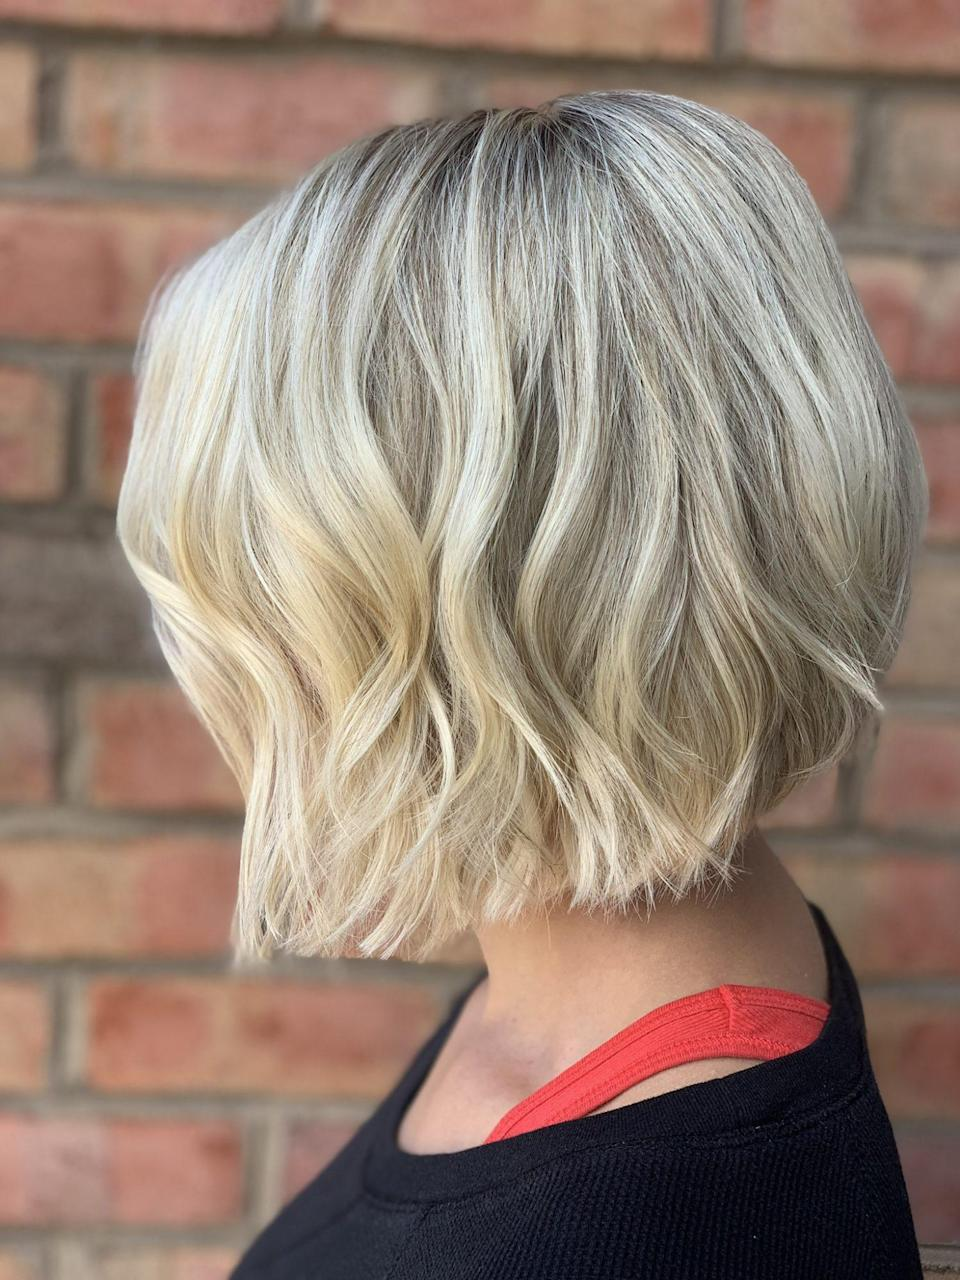 """<p>You can also accomplish a timeless look through the styling techniques you use. This bob cut has textured layers and is <a href=""""https://www.southernliving.com/fashion-beauty/hairstyles/best-curling-iron-short-hair"""" rel=""""nofollow noopener"""" target=""""_blank"""" data-ylk=""""slk:curled"""" class=""""link rapid-noclick-resp"""">curled</a> to accomplish an effortless """"beach wave"""" look. When blow drying your hair, always remember that the flatter the brush, the flatter your hair will appear, Janna Wright says. """"Using a round brush will give you more volume and height for your desired look."""" </p>"""